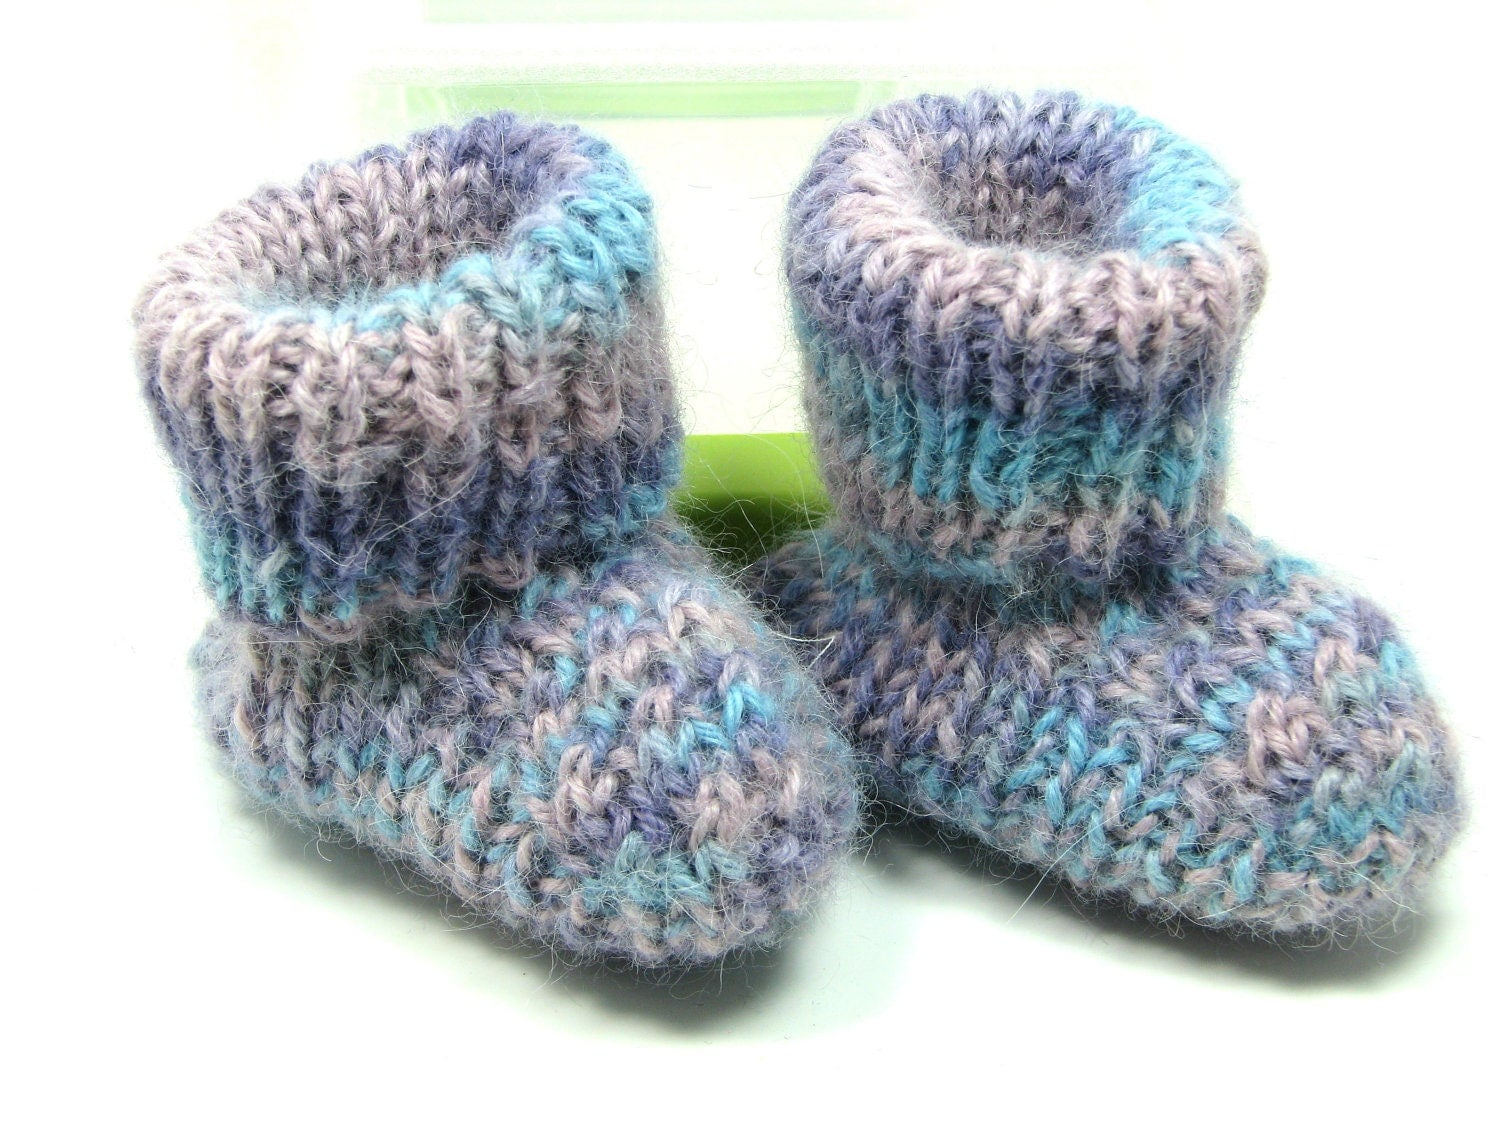 Knitted Alpaca Baby Booties Pink Lavender Blue Stripes 0-6 mos - jenandoles